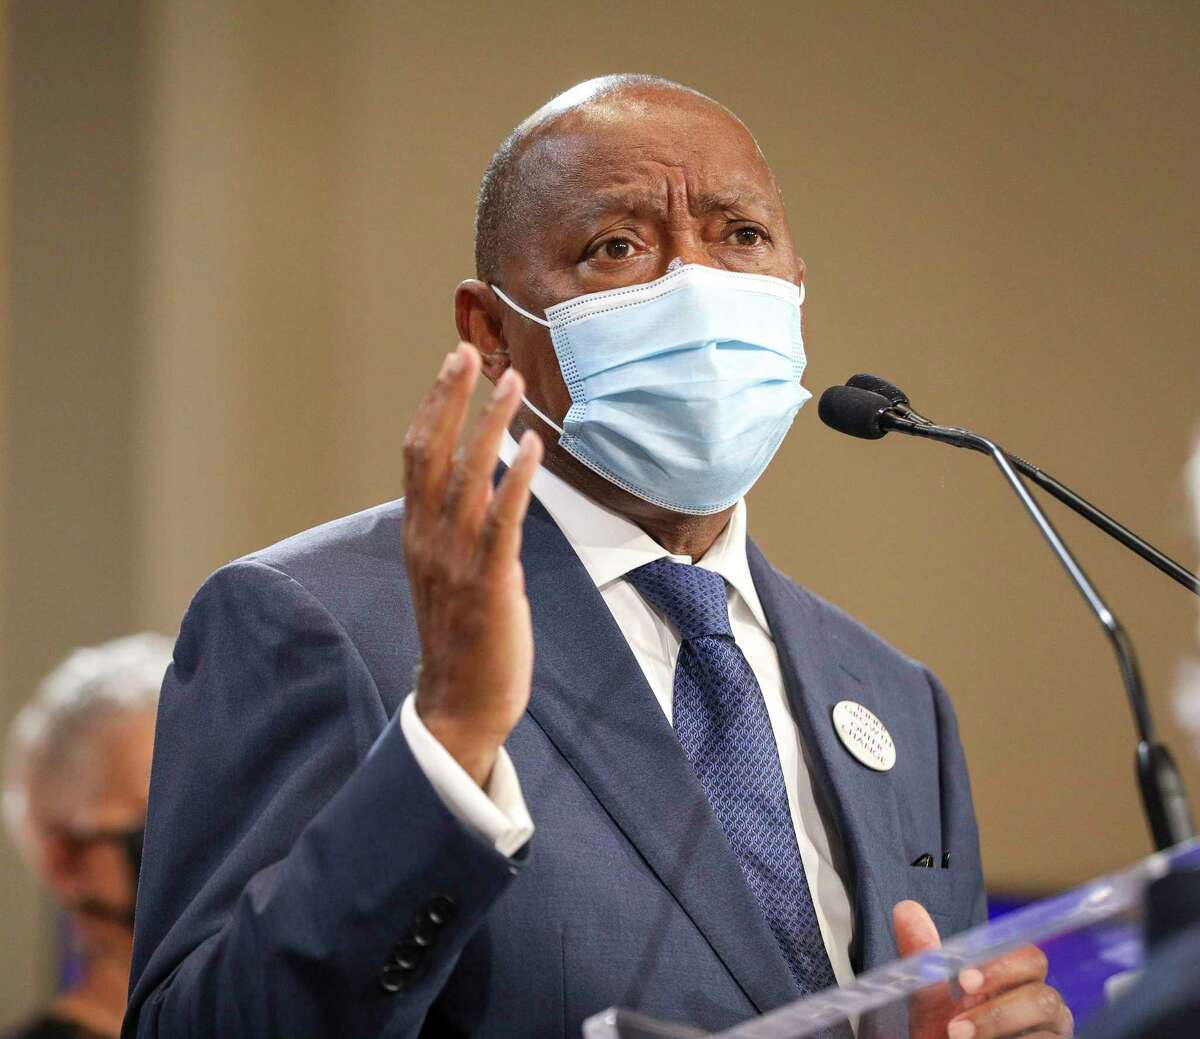 Houston Mayor Sylvester Turner speaks during a press conference to announce the recommendations of the Mayor's Task Force on Policing Reform on Wednesday, Sept. 30 2020, at city hall in Houston.